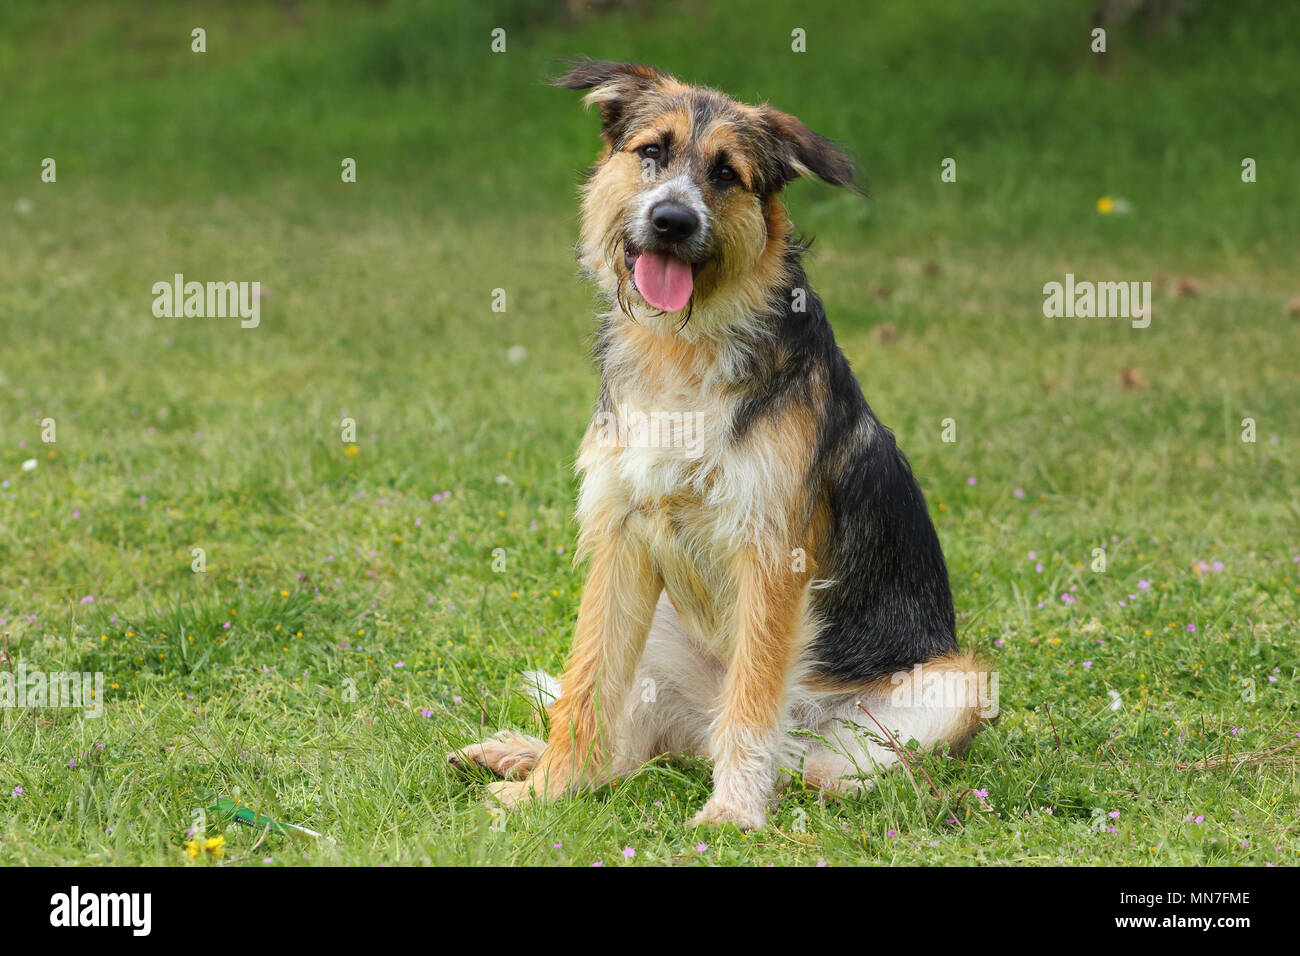 shepherd breed dog sitting tilts his head listening with a caring and cheerful look - Stock Image